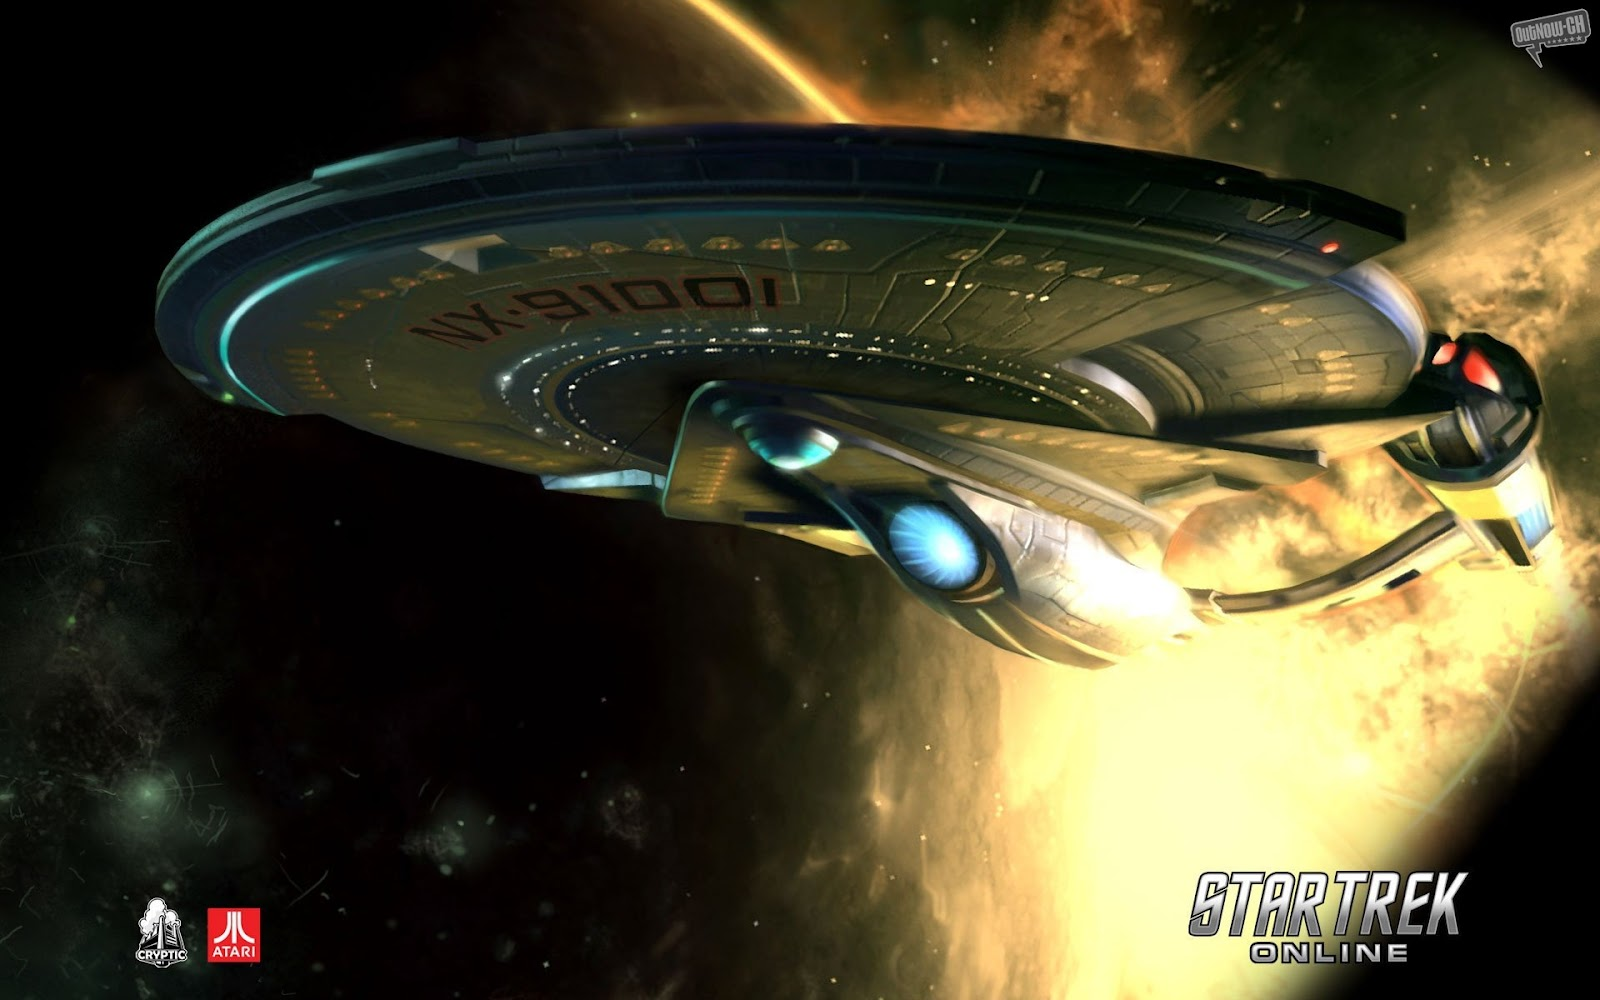 Star Trek Online Gaming Wallpapers And Theme For Windows 7